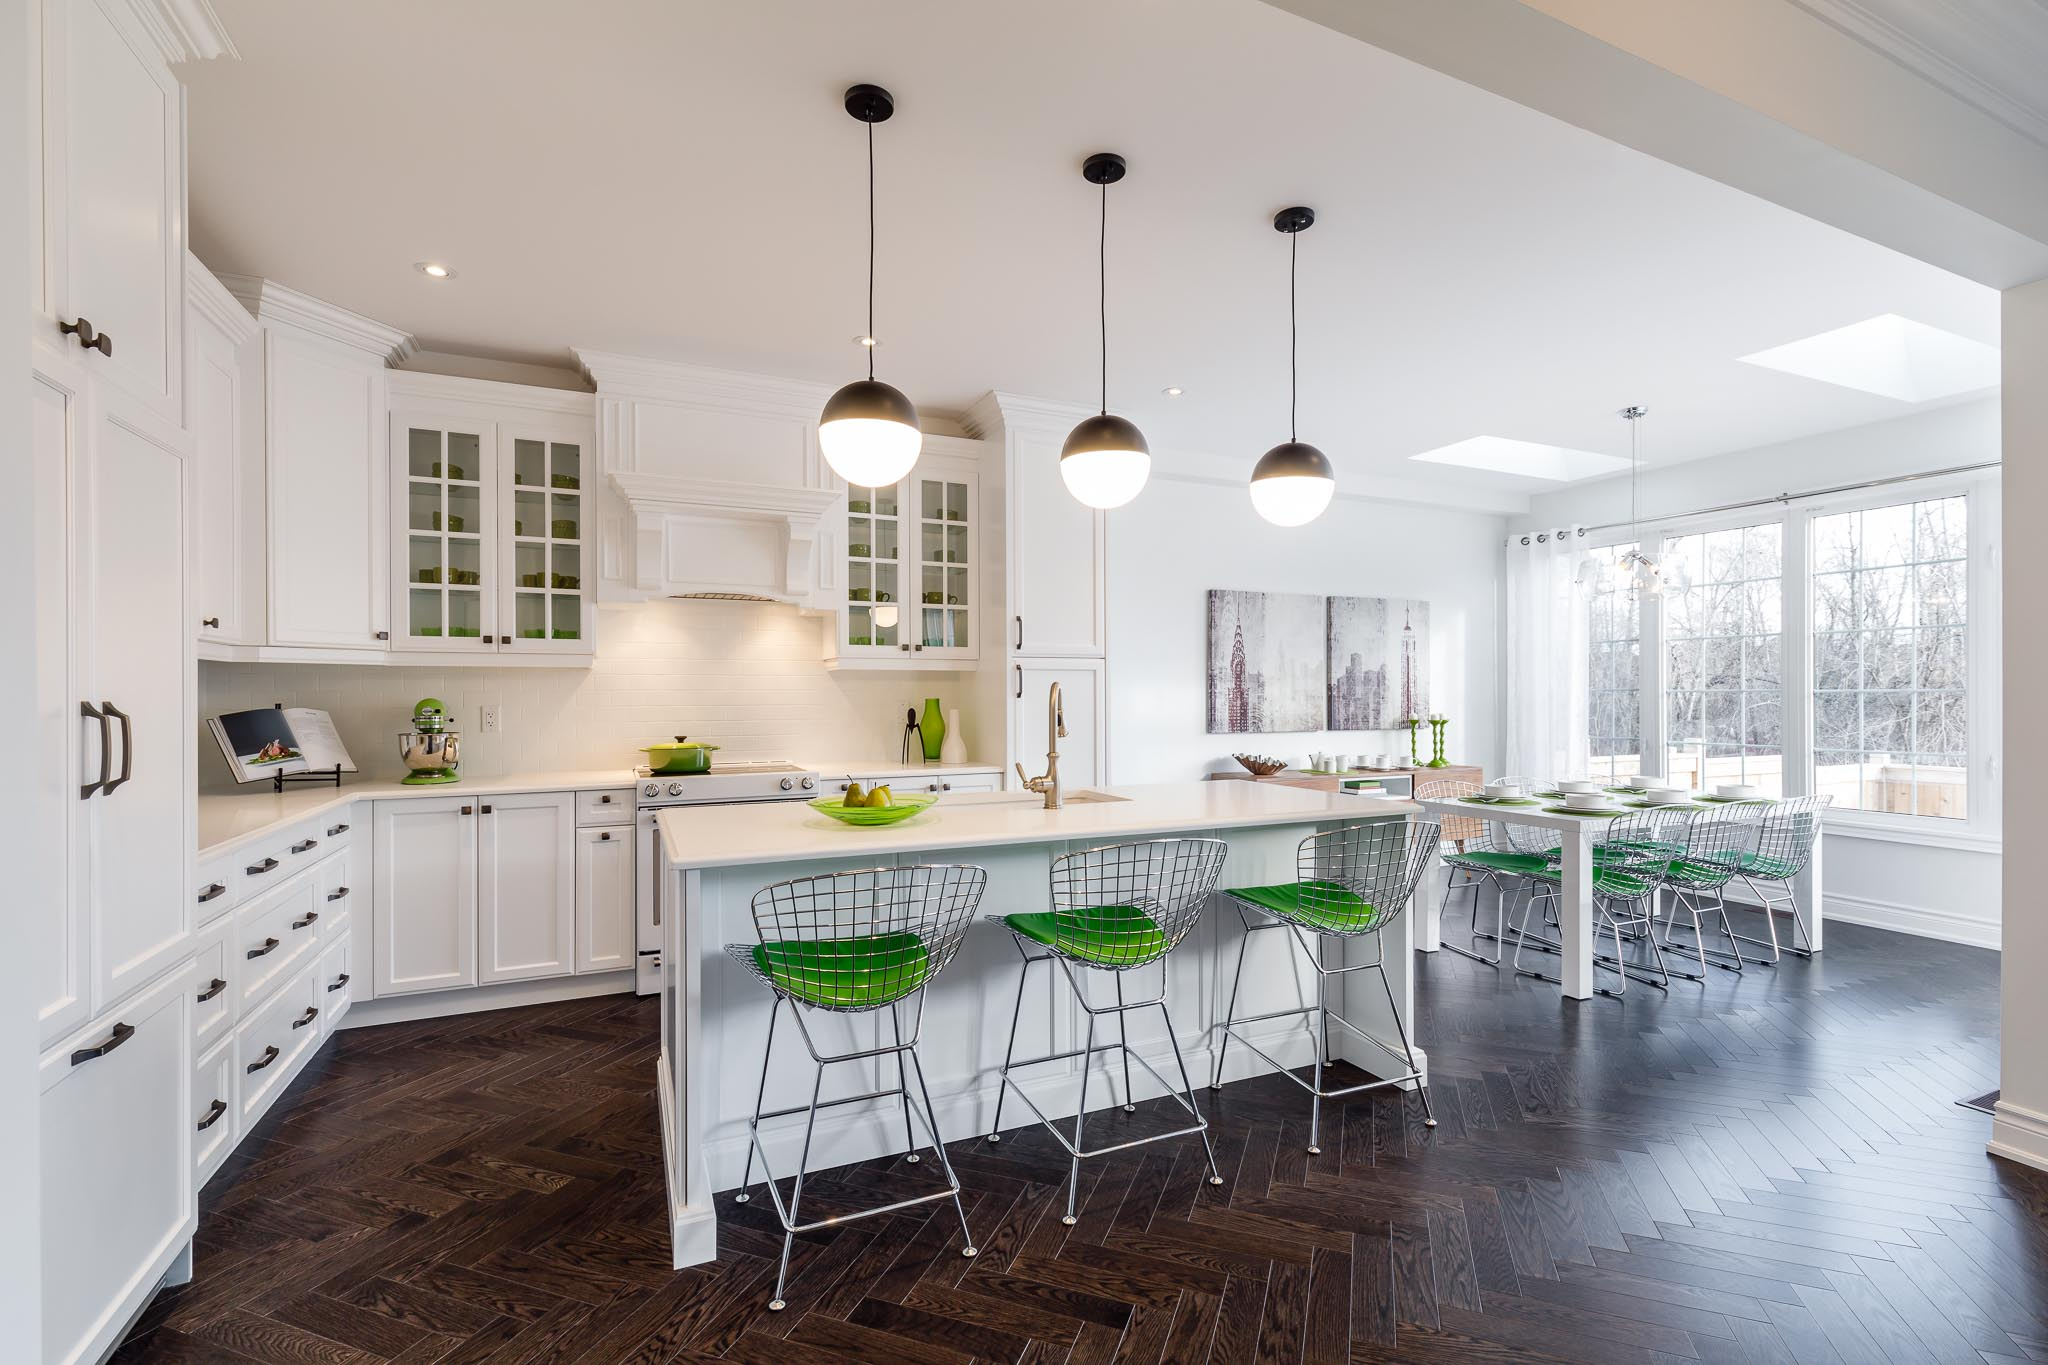 Great Gulf Westfield white kitchen with dark wood floors and metal stools with green seats